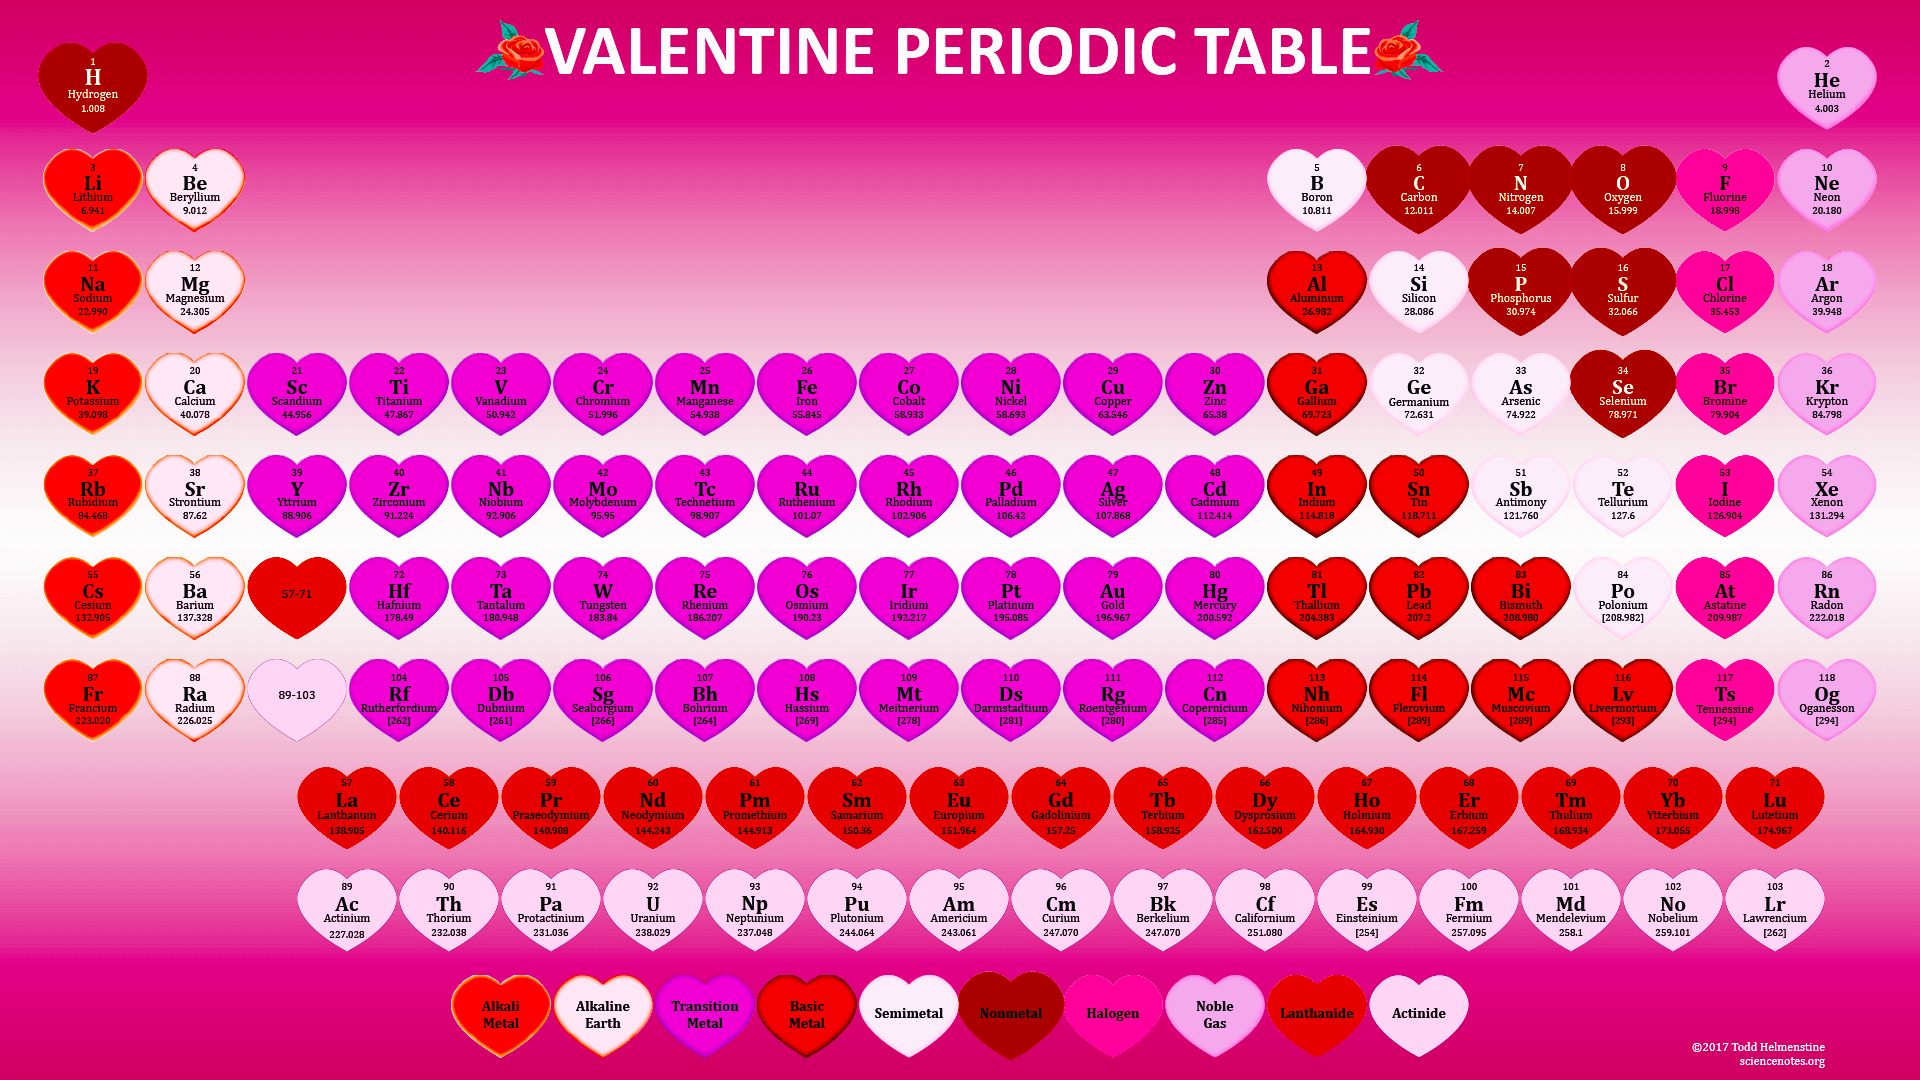 Valentines day periodic table wallpaper valentine peroidic table 2017 edition gamestrikefo Gallery